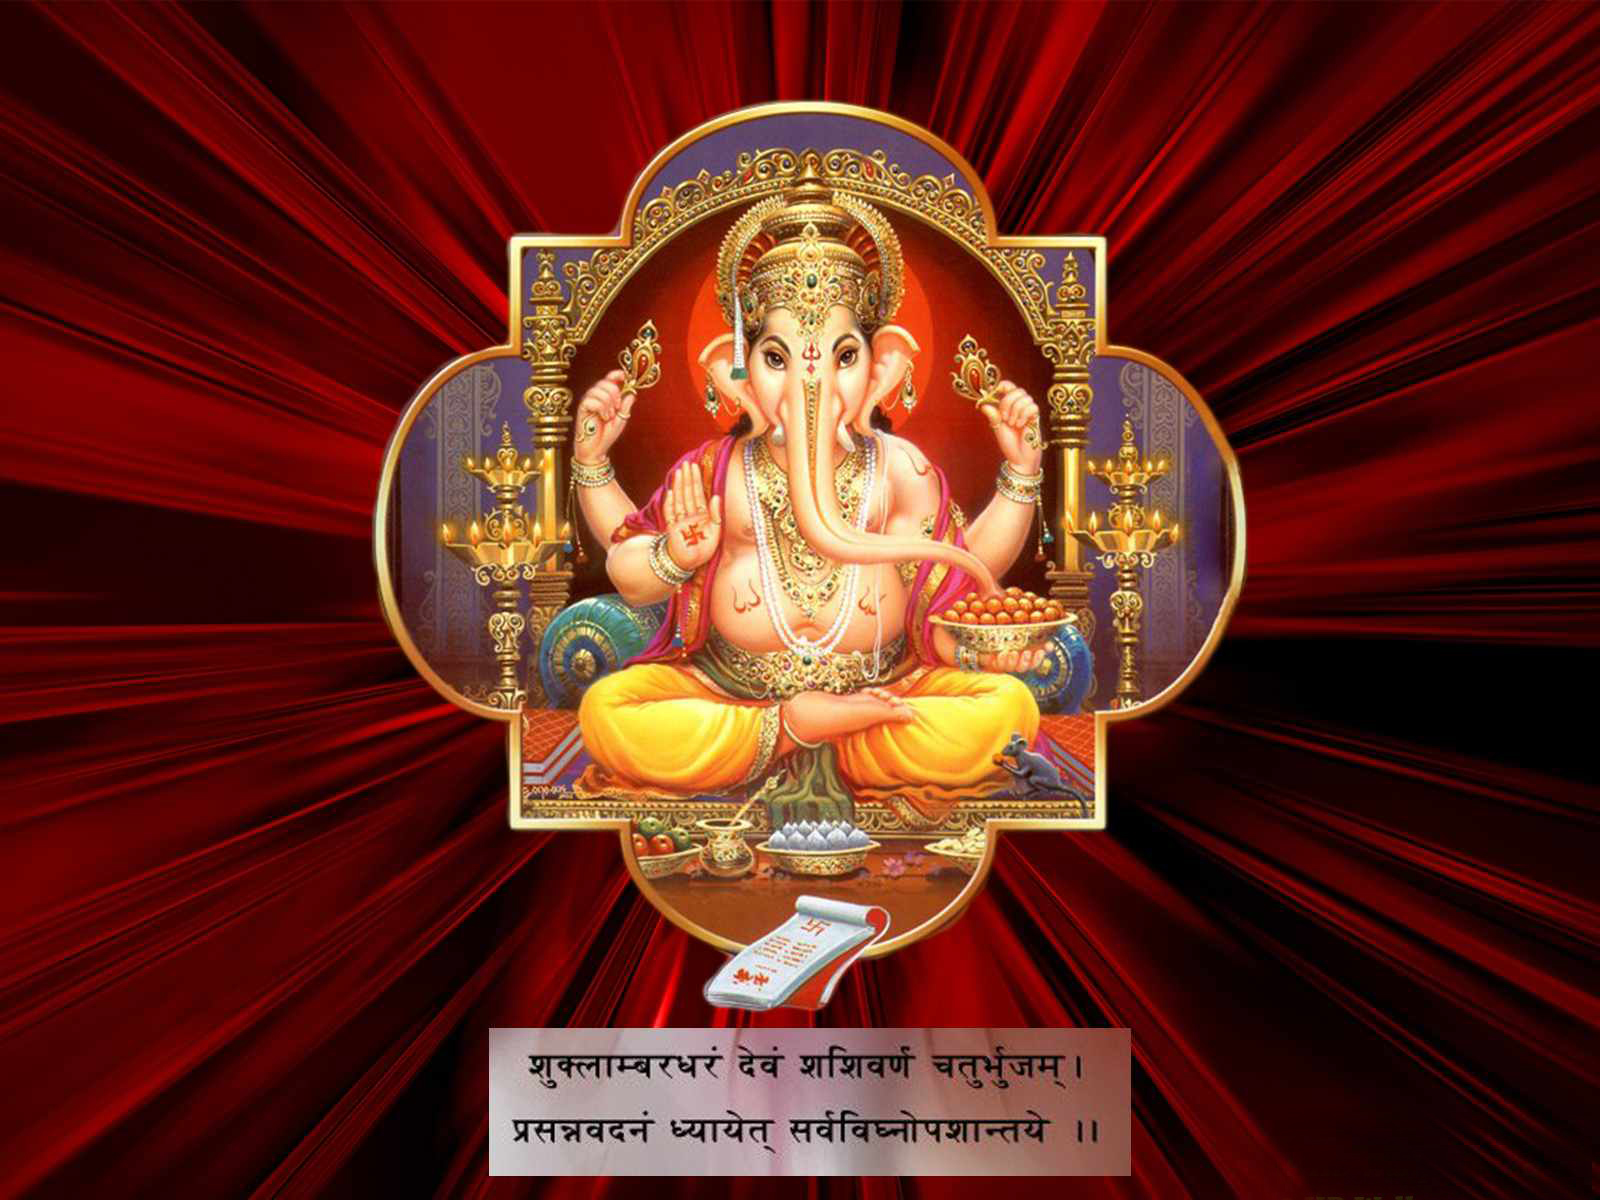 lord ganesha wallpaper hd wallpapers high definition 100 high